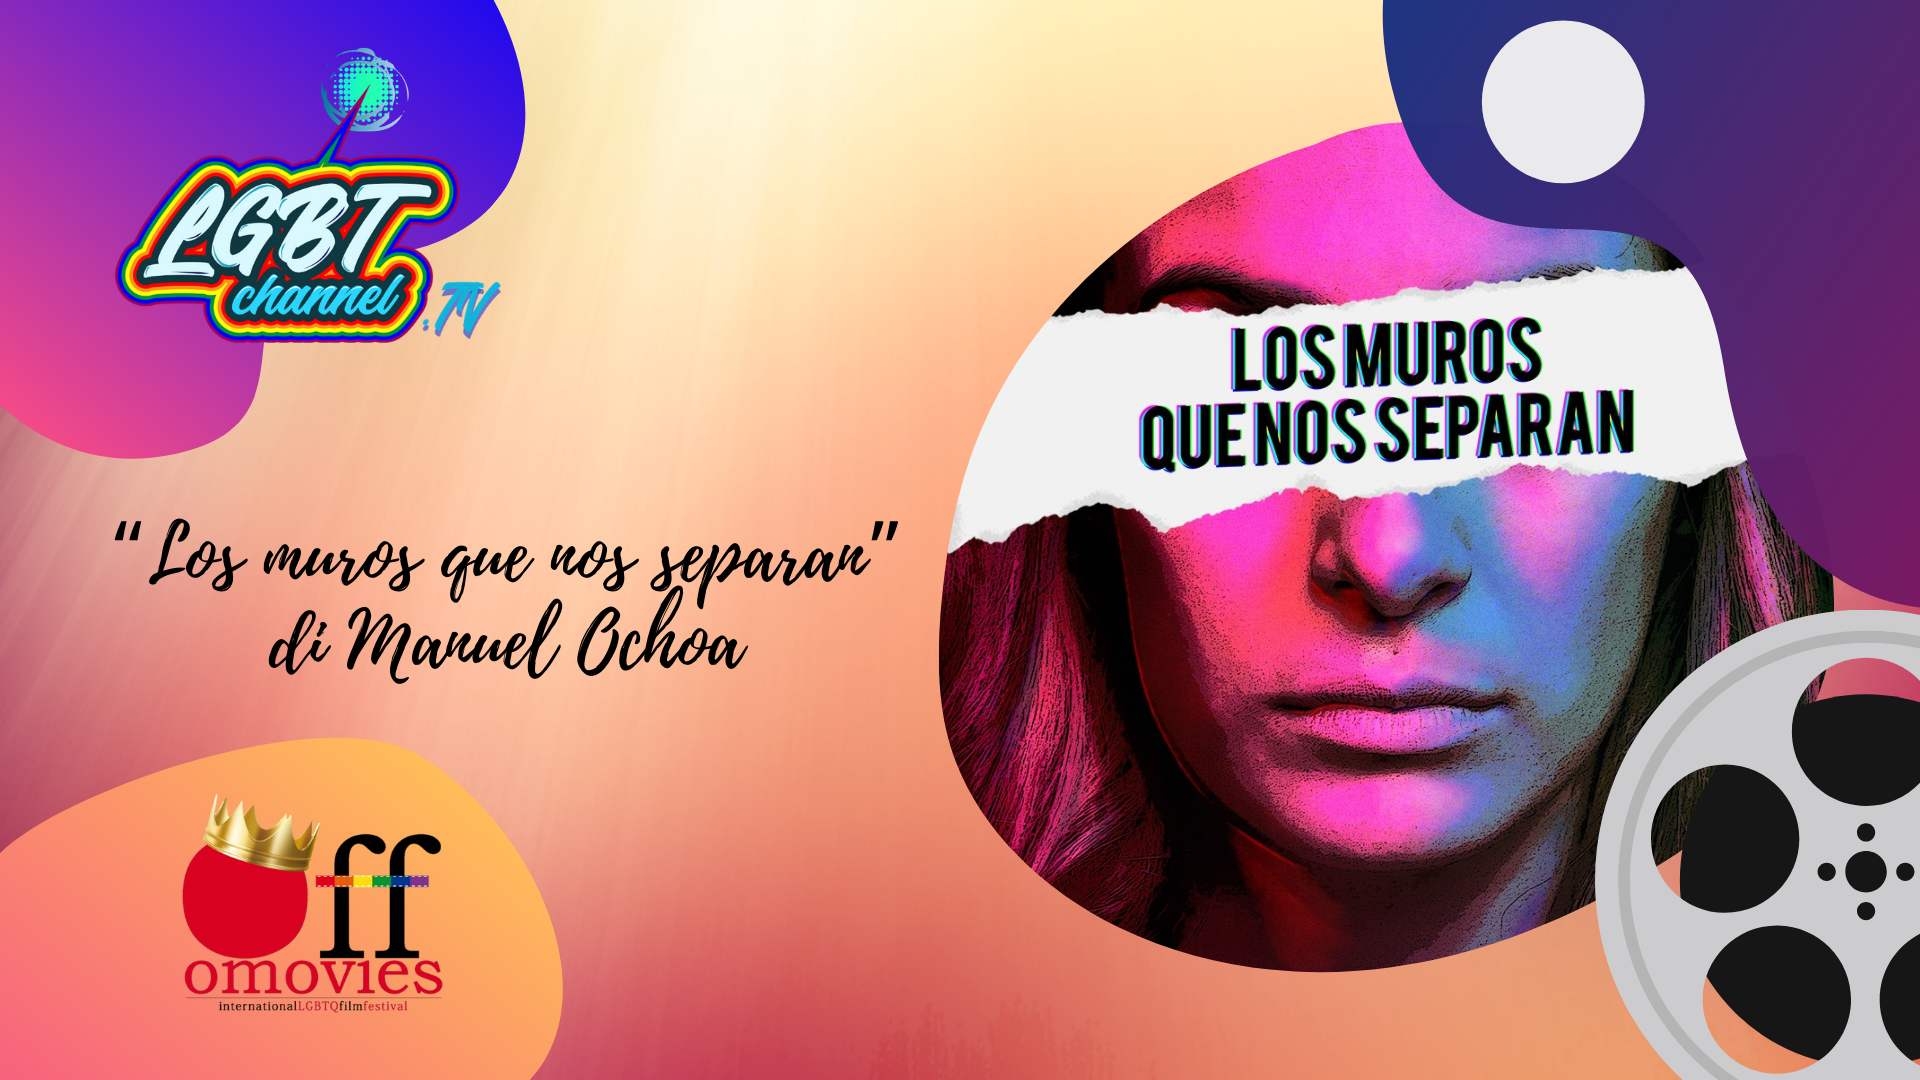 #CineForum | OFF - Manuel Ocho a lgbtchannel.tv